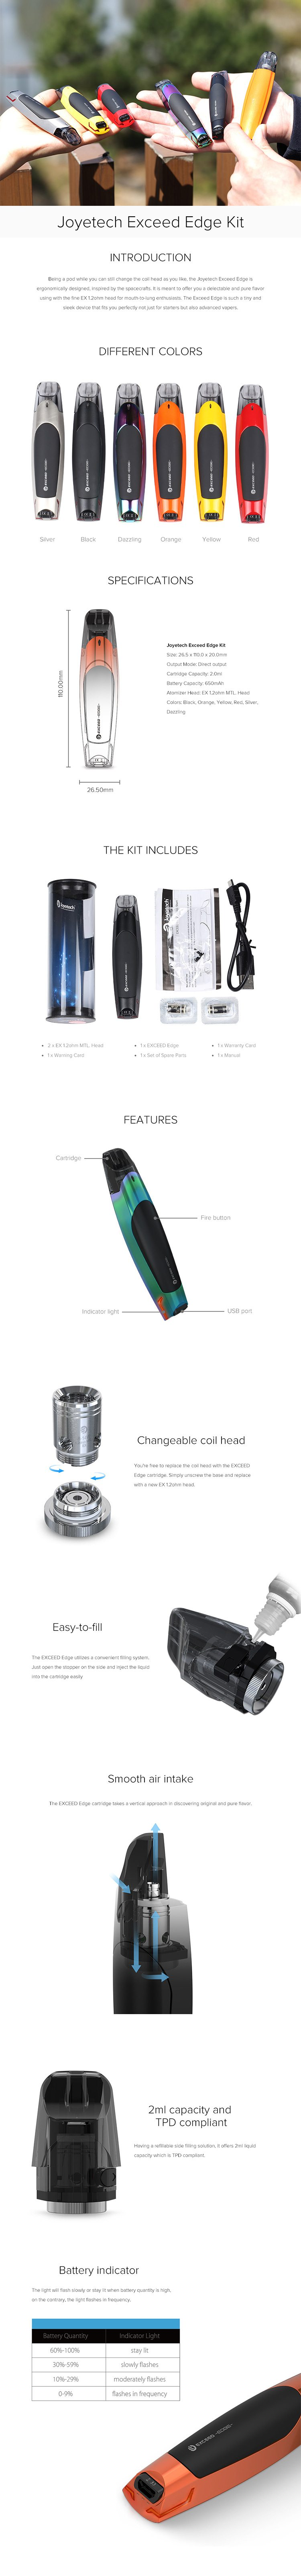 Joyetech EXCEED Edge Pod System Kit (2ml&650mah) 0